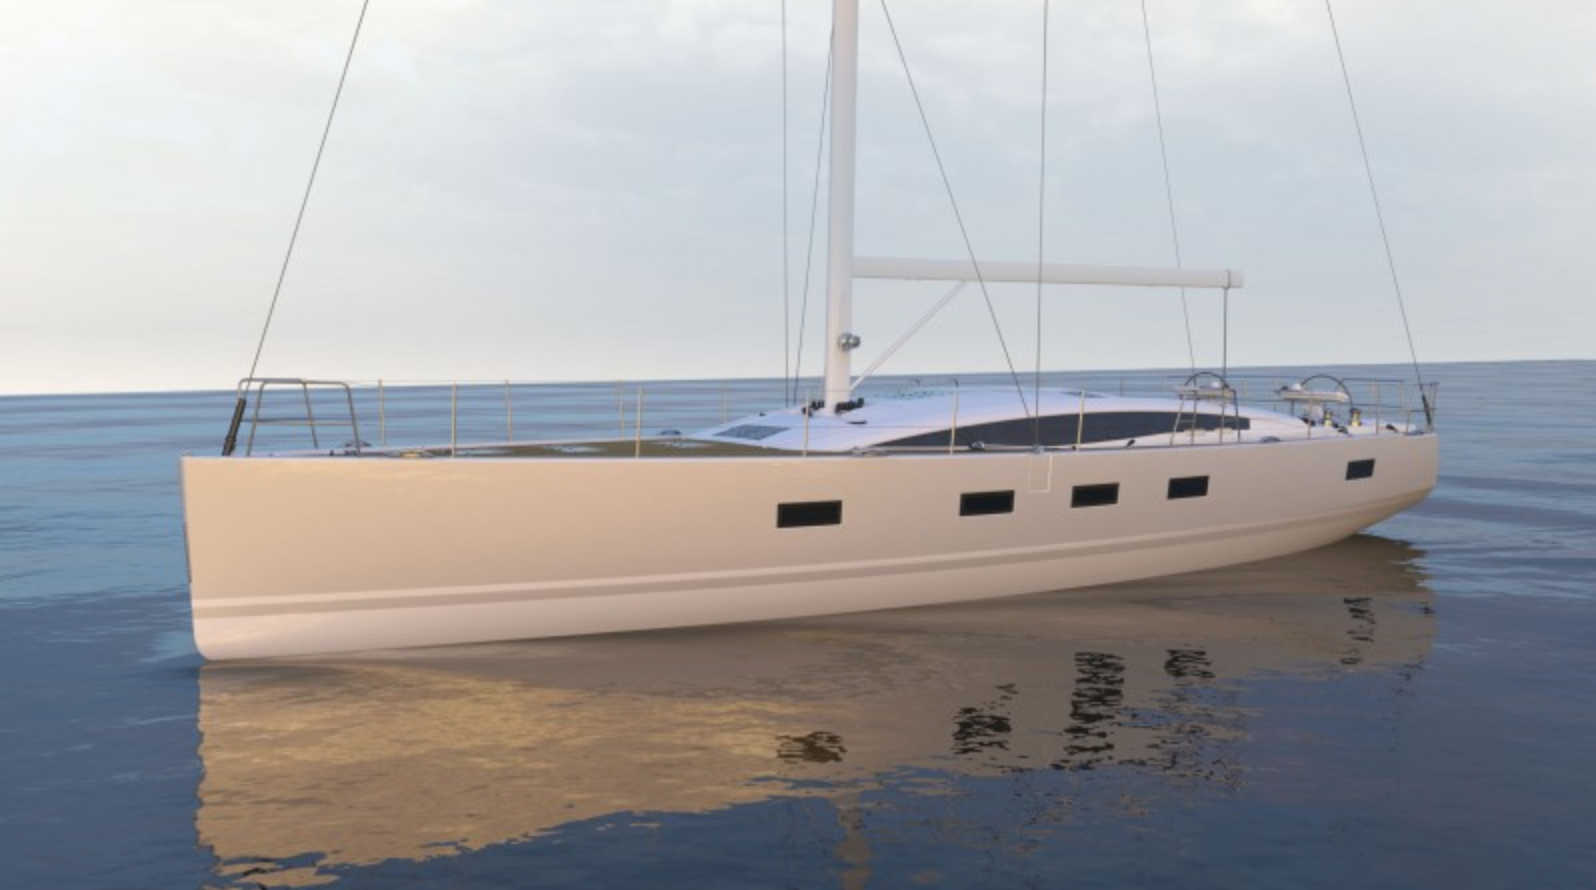 Jeanneau 64: First Look